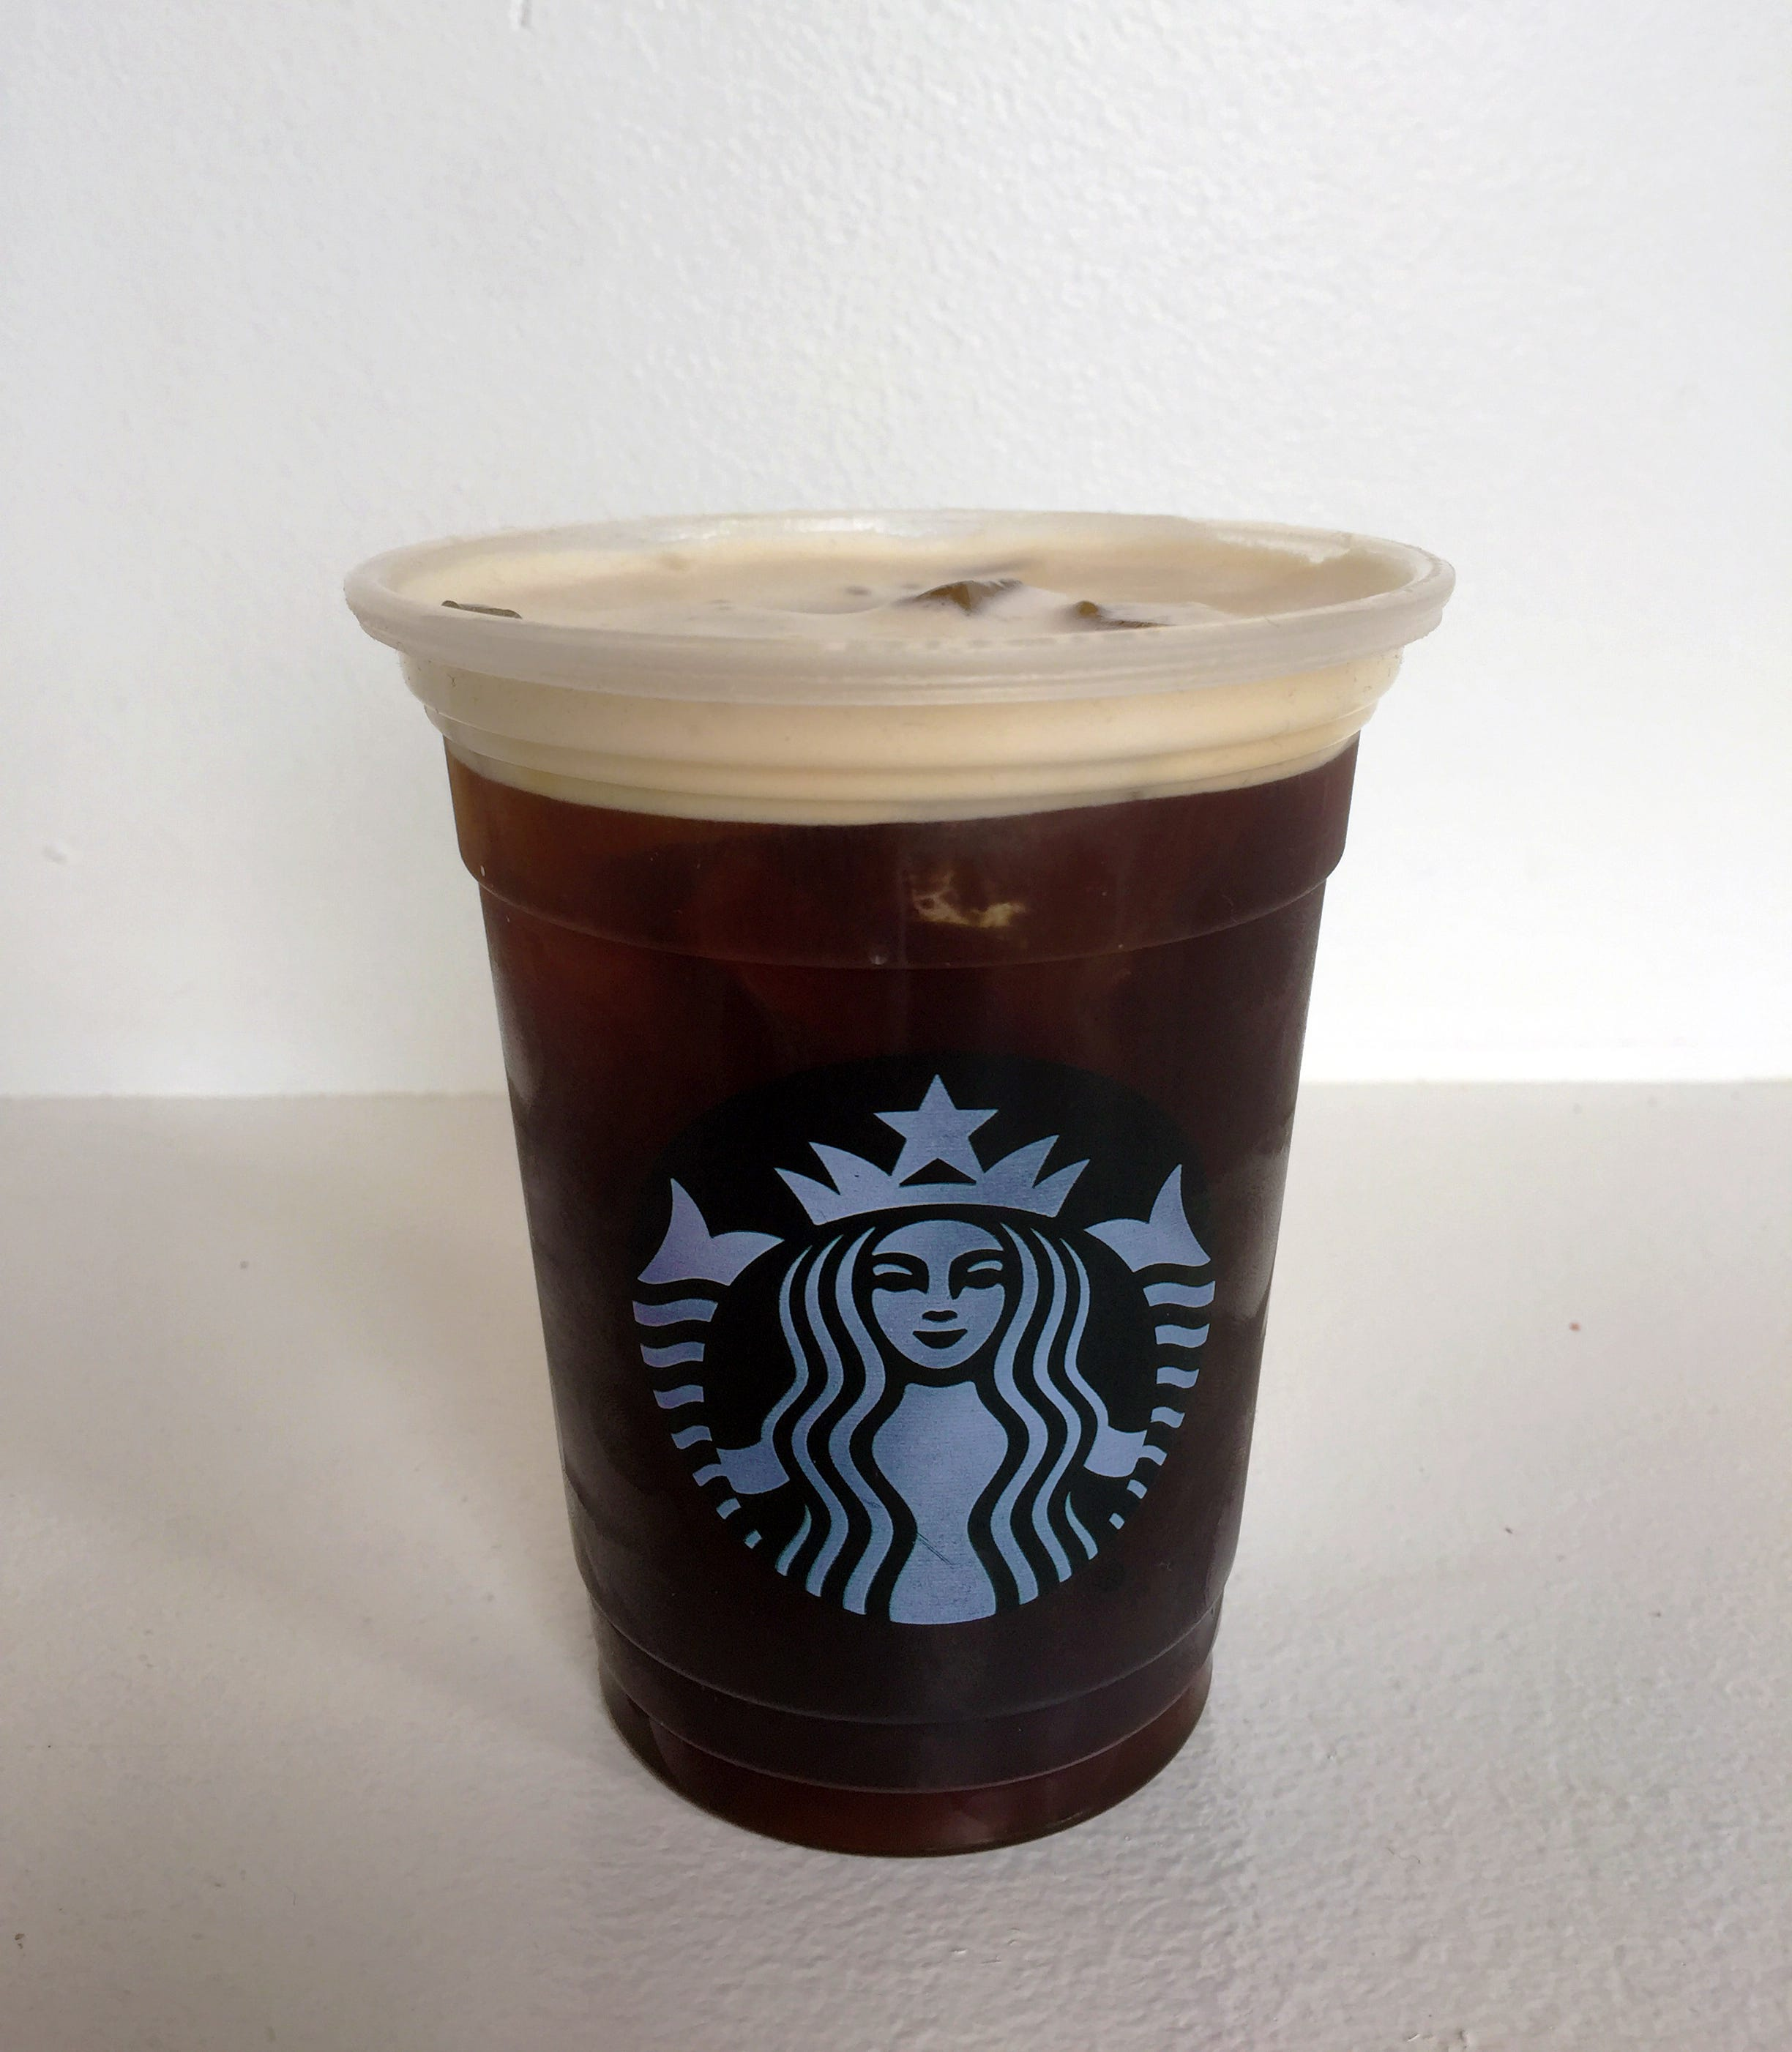 Starbucks Just Introduced New Cold Foam For Iced Coffee